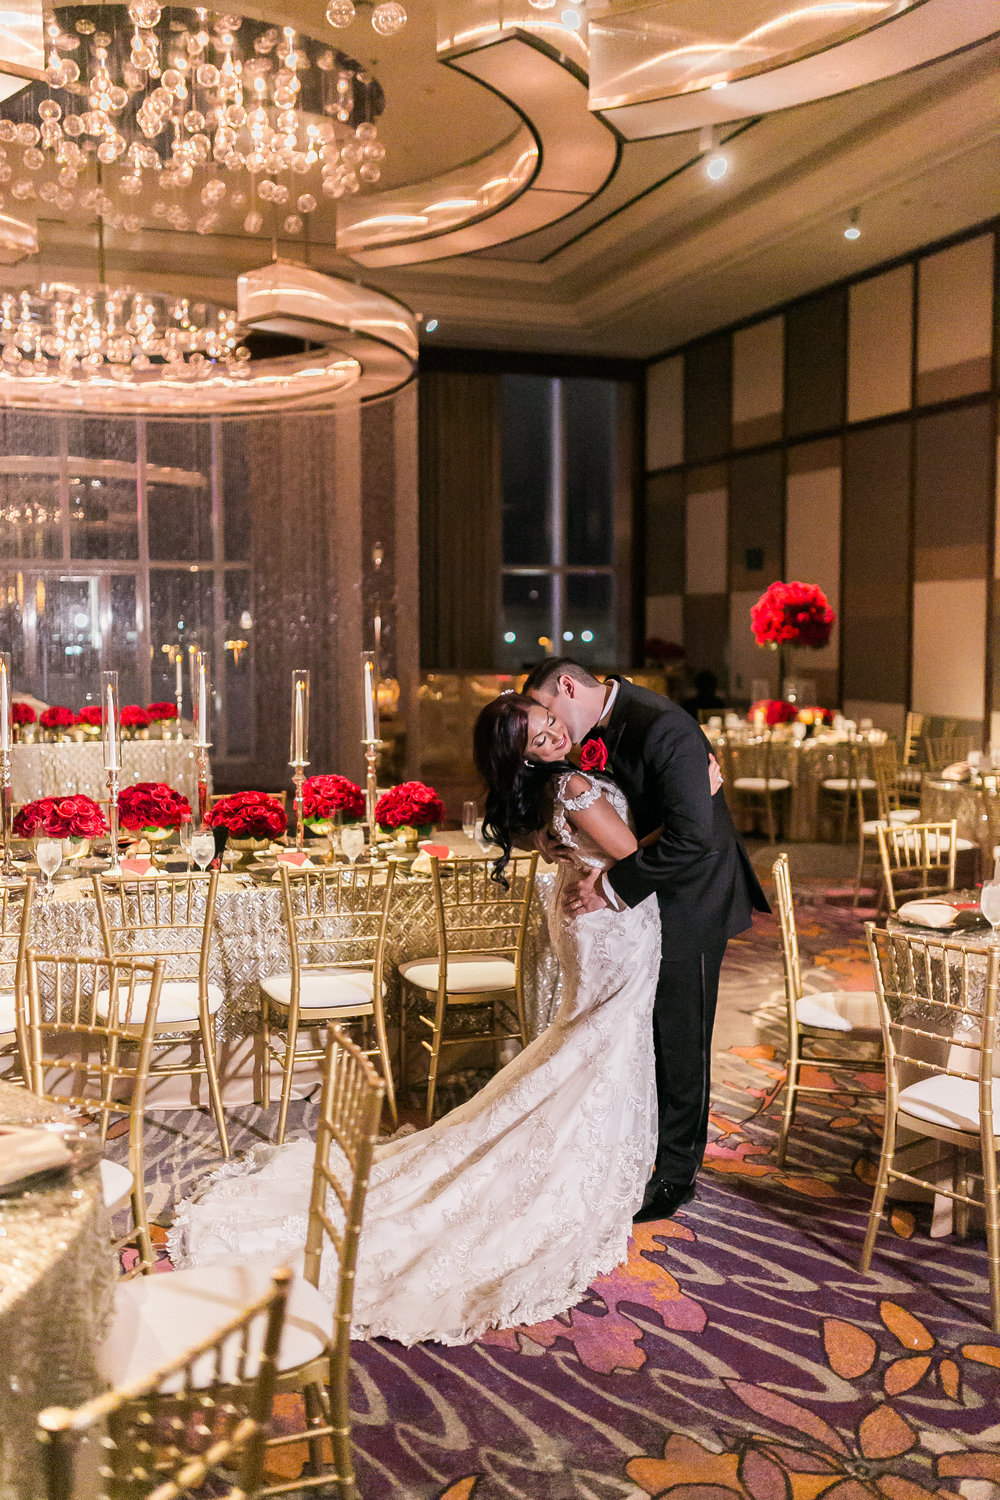 The groom plants a kiss on the bride's neck. Las Vegas Wedding Planner Andrea Eppolito shares this multicultural wedding.  Photo by J.Anne Photography. Wedding at Mandarin Oriental Las Vegas.  Decor by DBD Vegas.